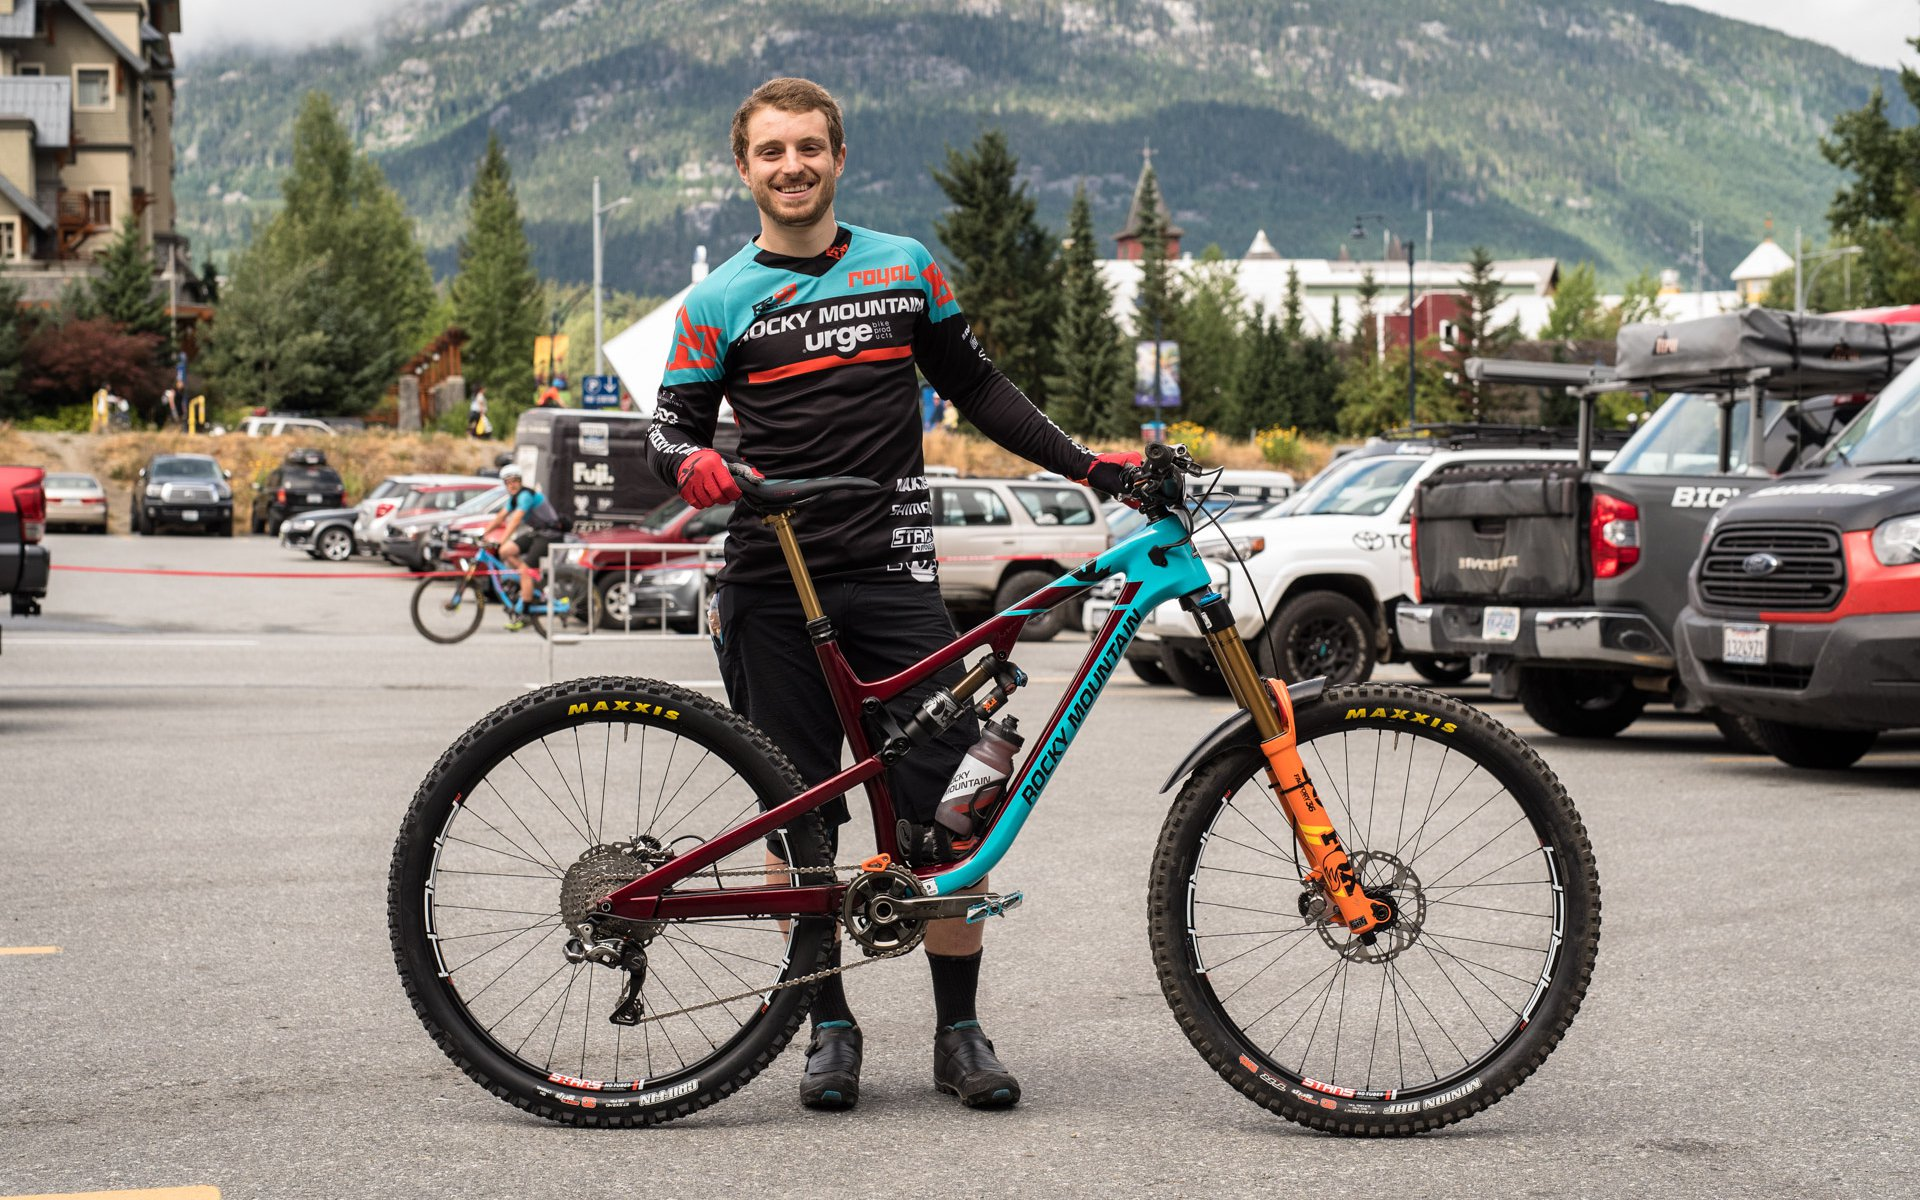 Jesse Melamed S Winning Ews Bike